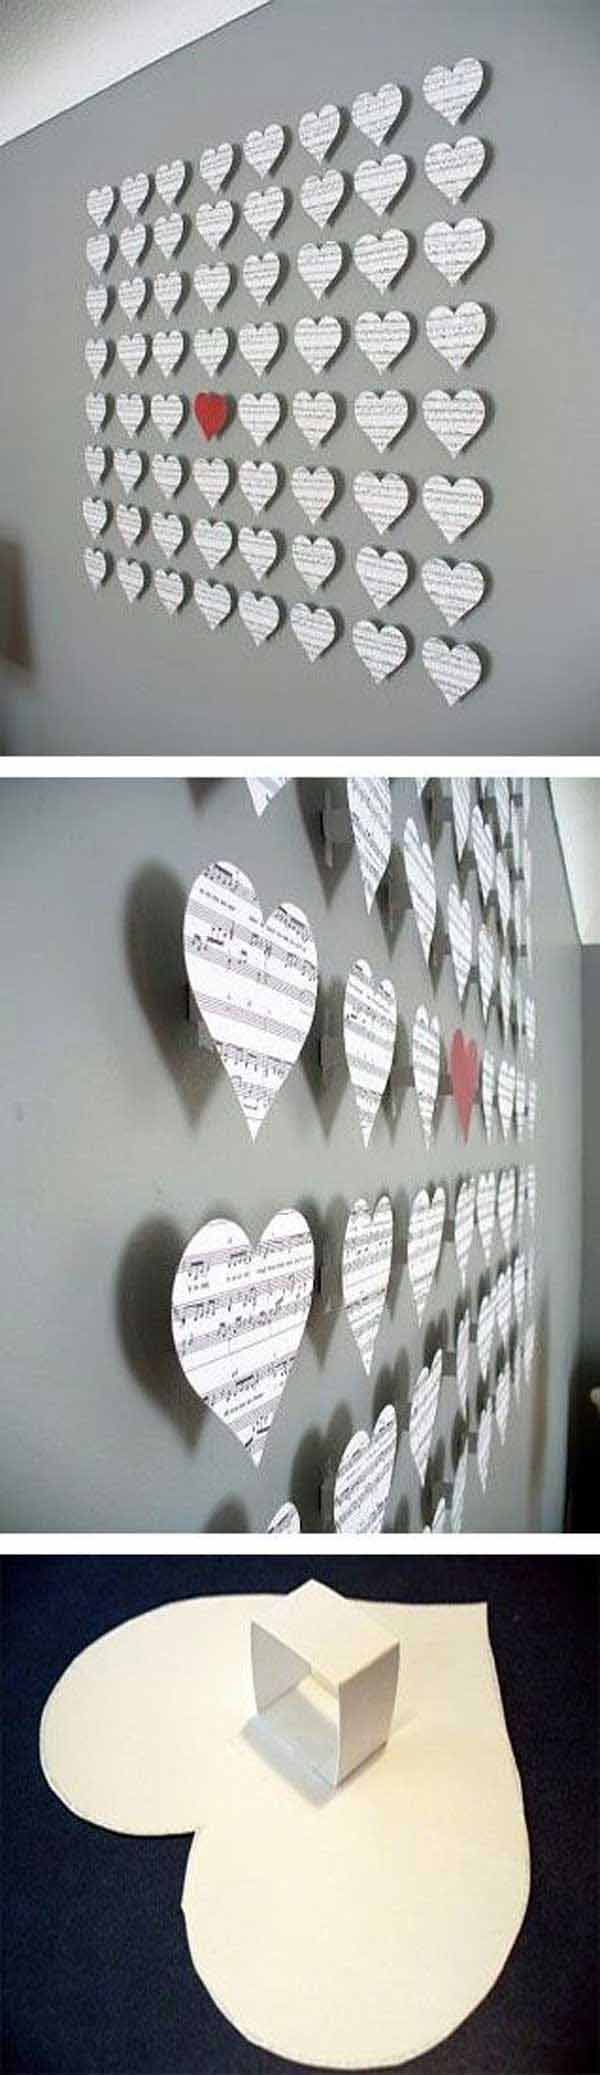 best 20 diy wall ideas on pinterest diy diy wall hanging and bedroom wall decorations - Diy Wall Decor Ideas For Bedroom